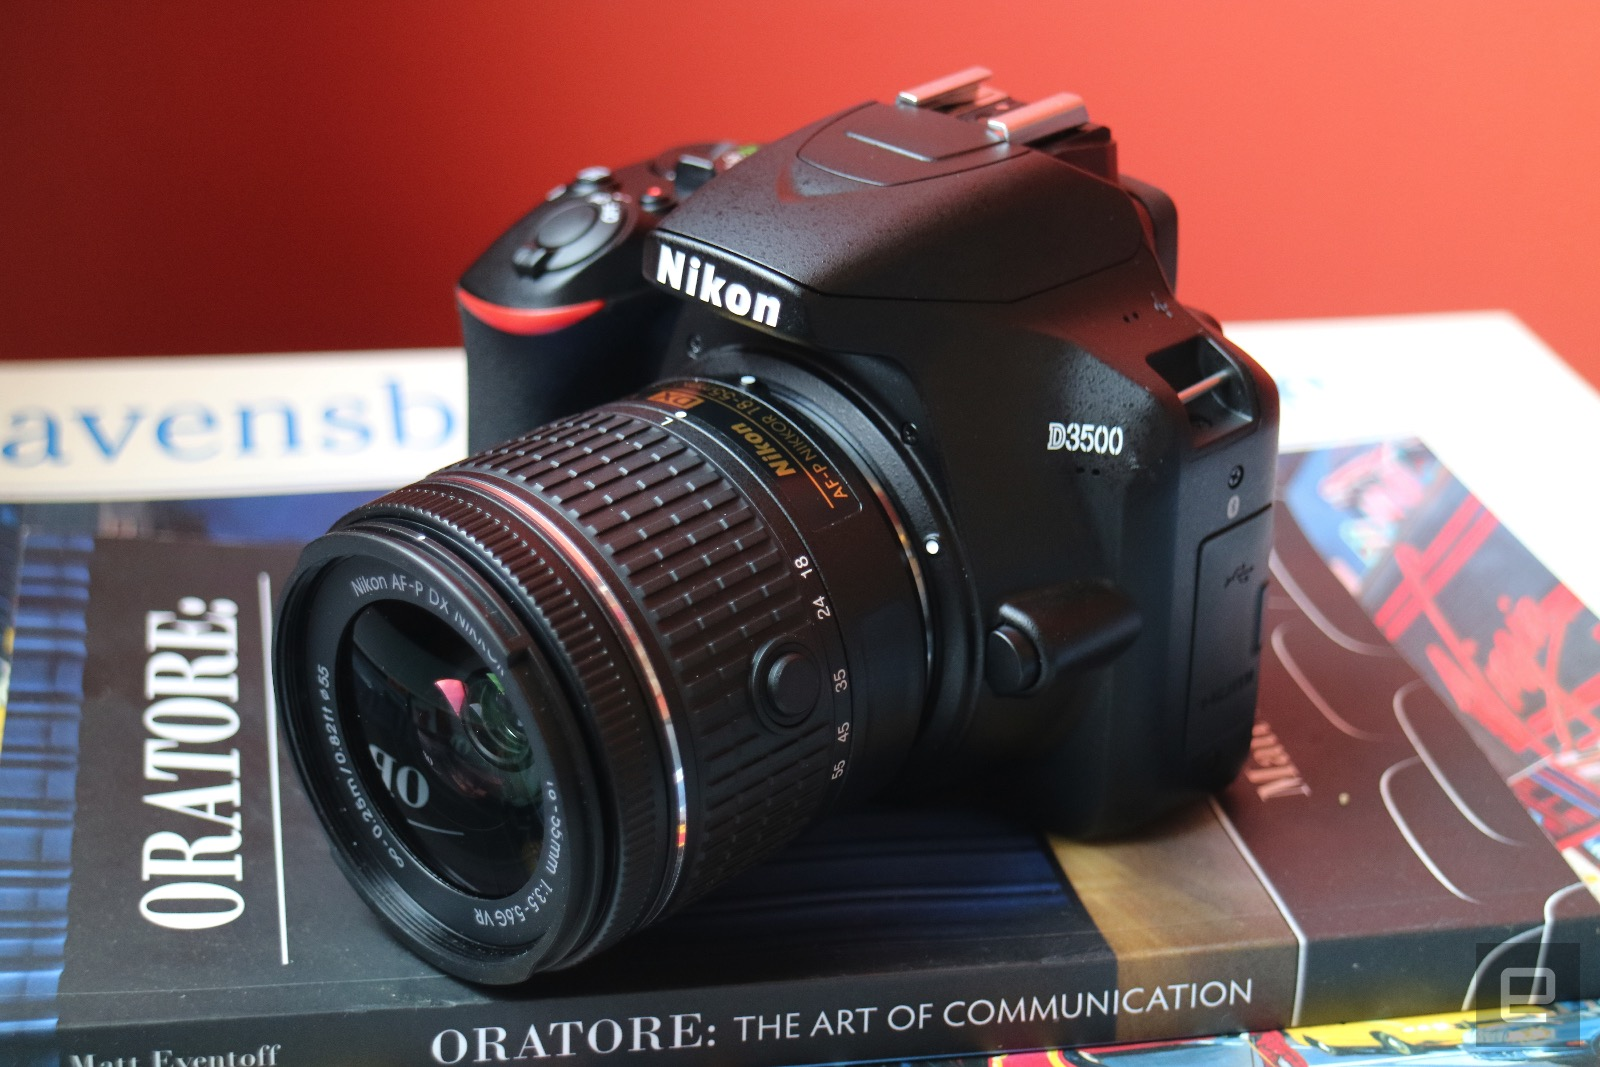 Nikon S D3500 Is A Compact Dslr For Beginners